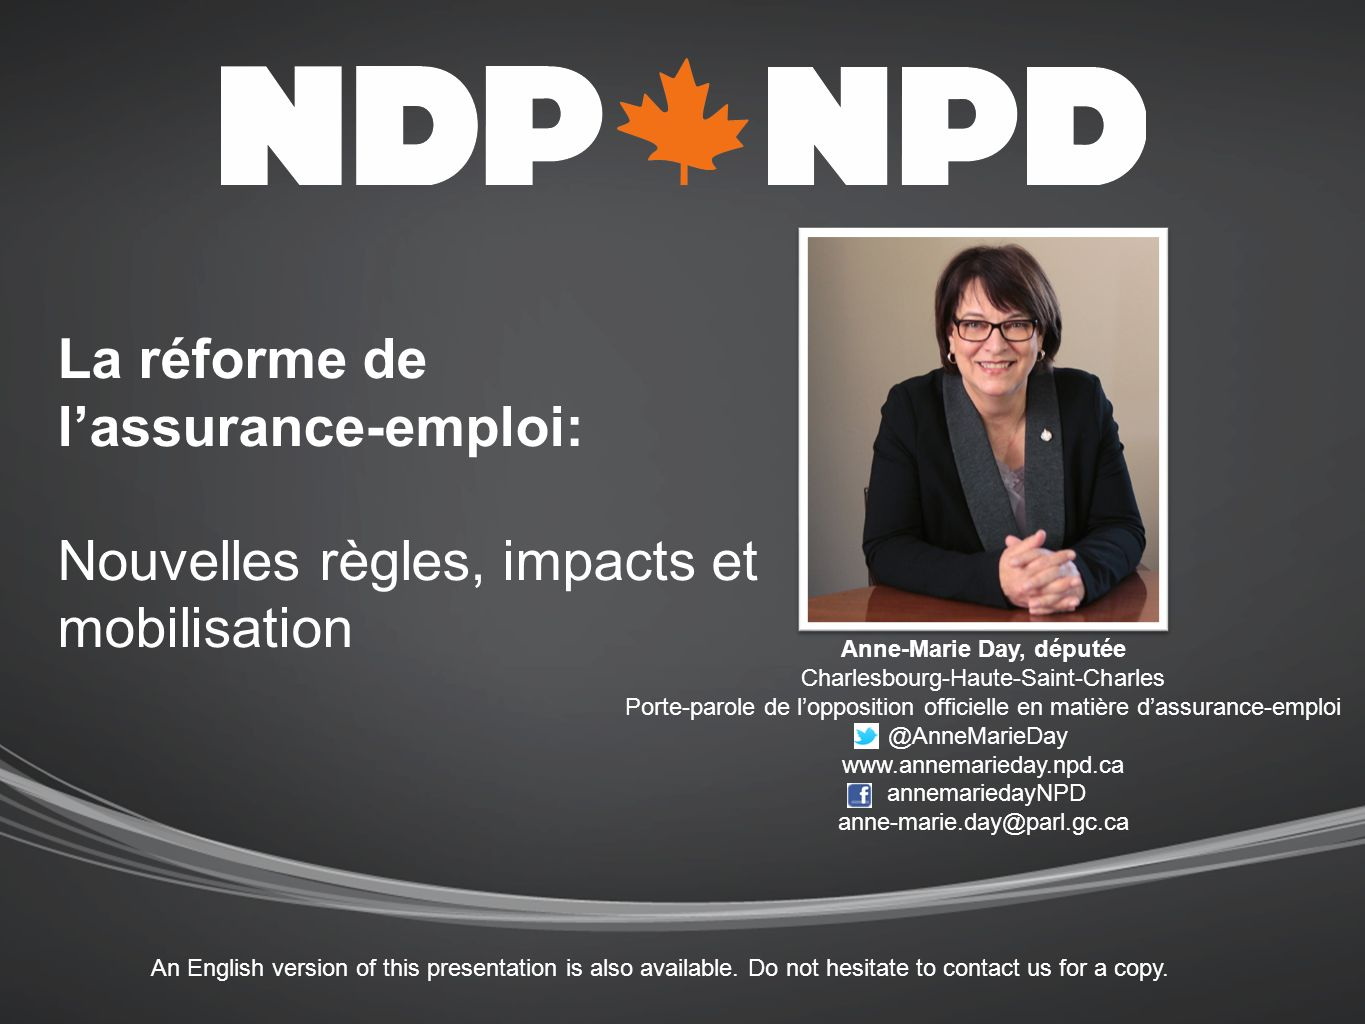 La réforme de lassurance-emploi: Nouvelles règles, impacts et mobilisation Anne-Marie Day, députée Charlesbourg-Haute-Saint-Charles Porte-parole de lopposition officielle en matière dassurance-emploi @AnneMarieDay www.annemarieday.npd.ca annemariedayNPD anne-marie.day@parl.gc.ca An English version of this presentation is also available.